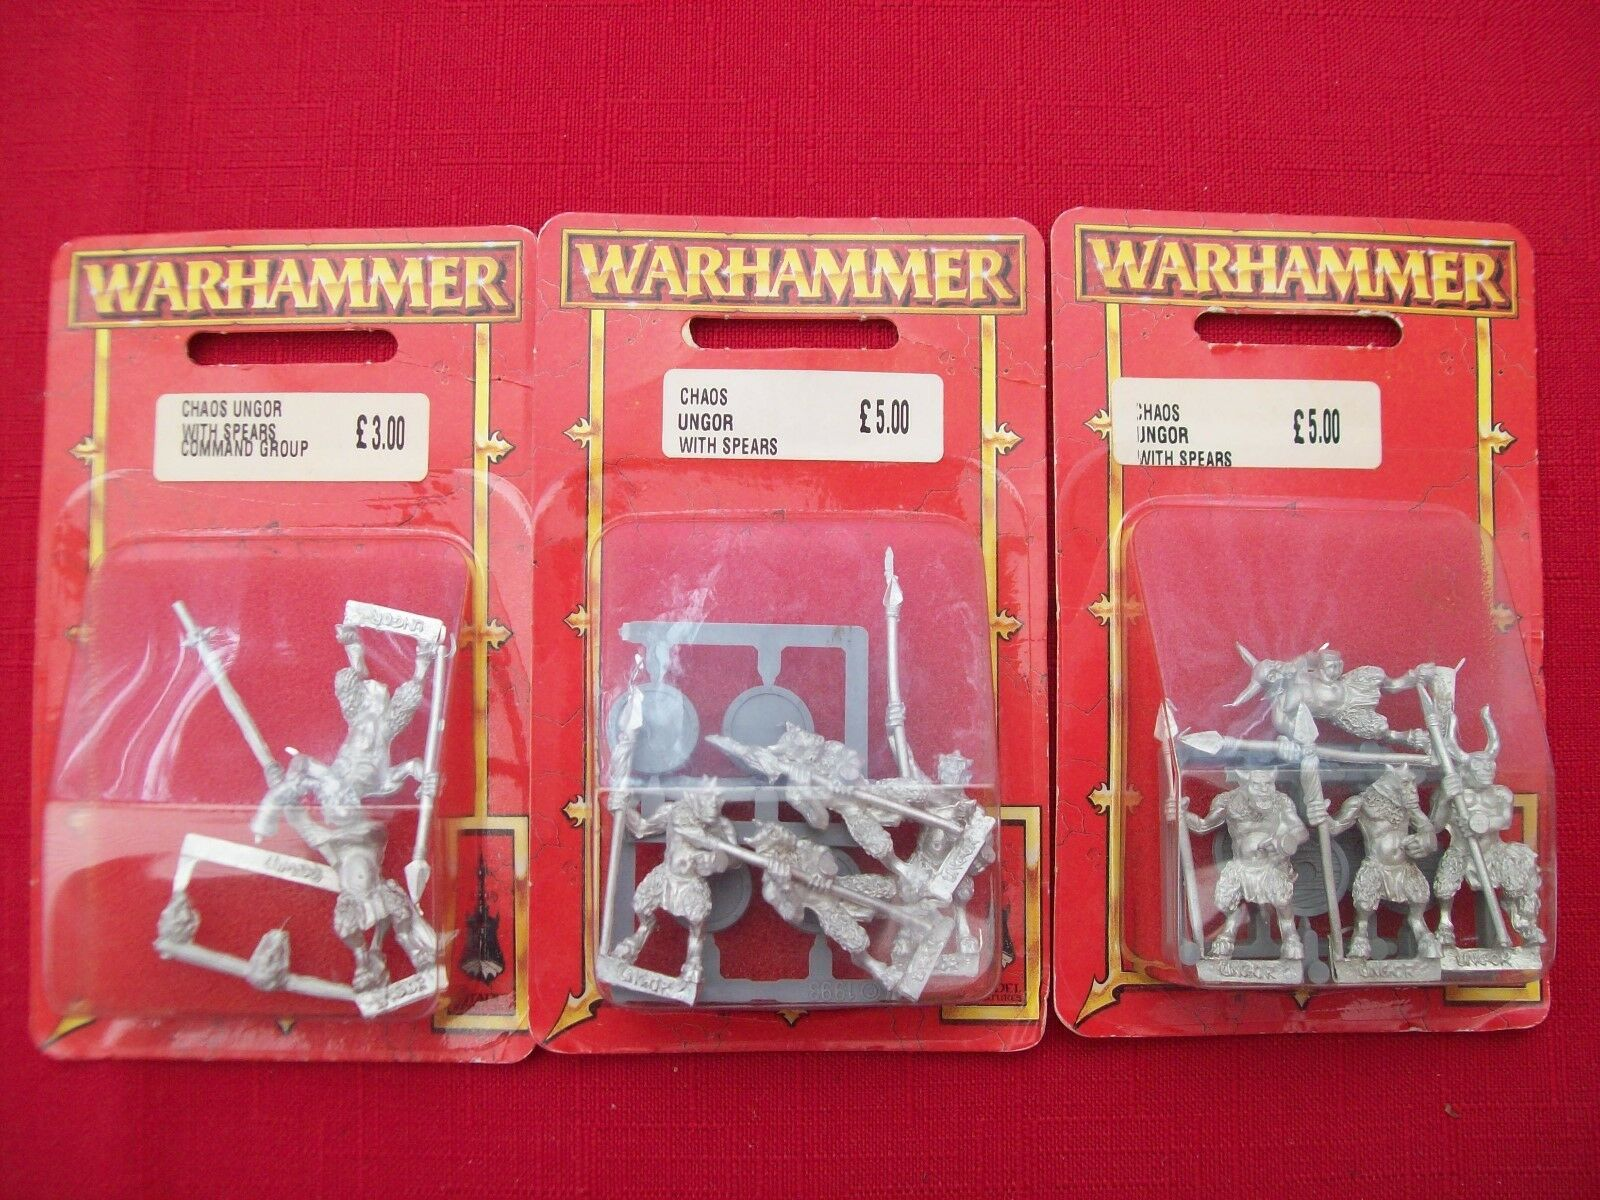 Warhammer Chaos Ungor with Spears Command Group x 1 and Ungor with Spears x 2 -